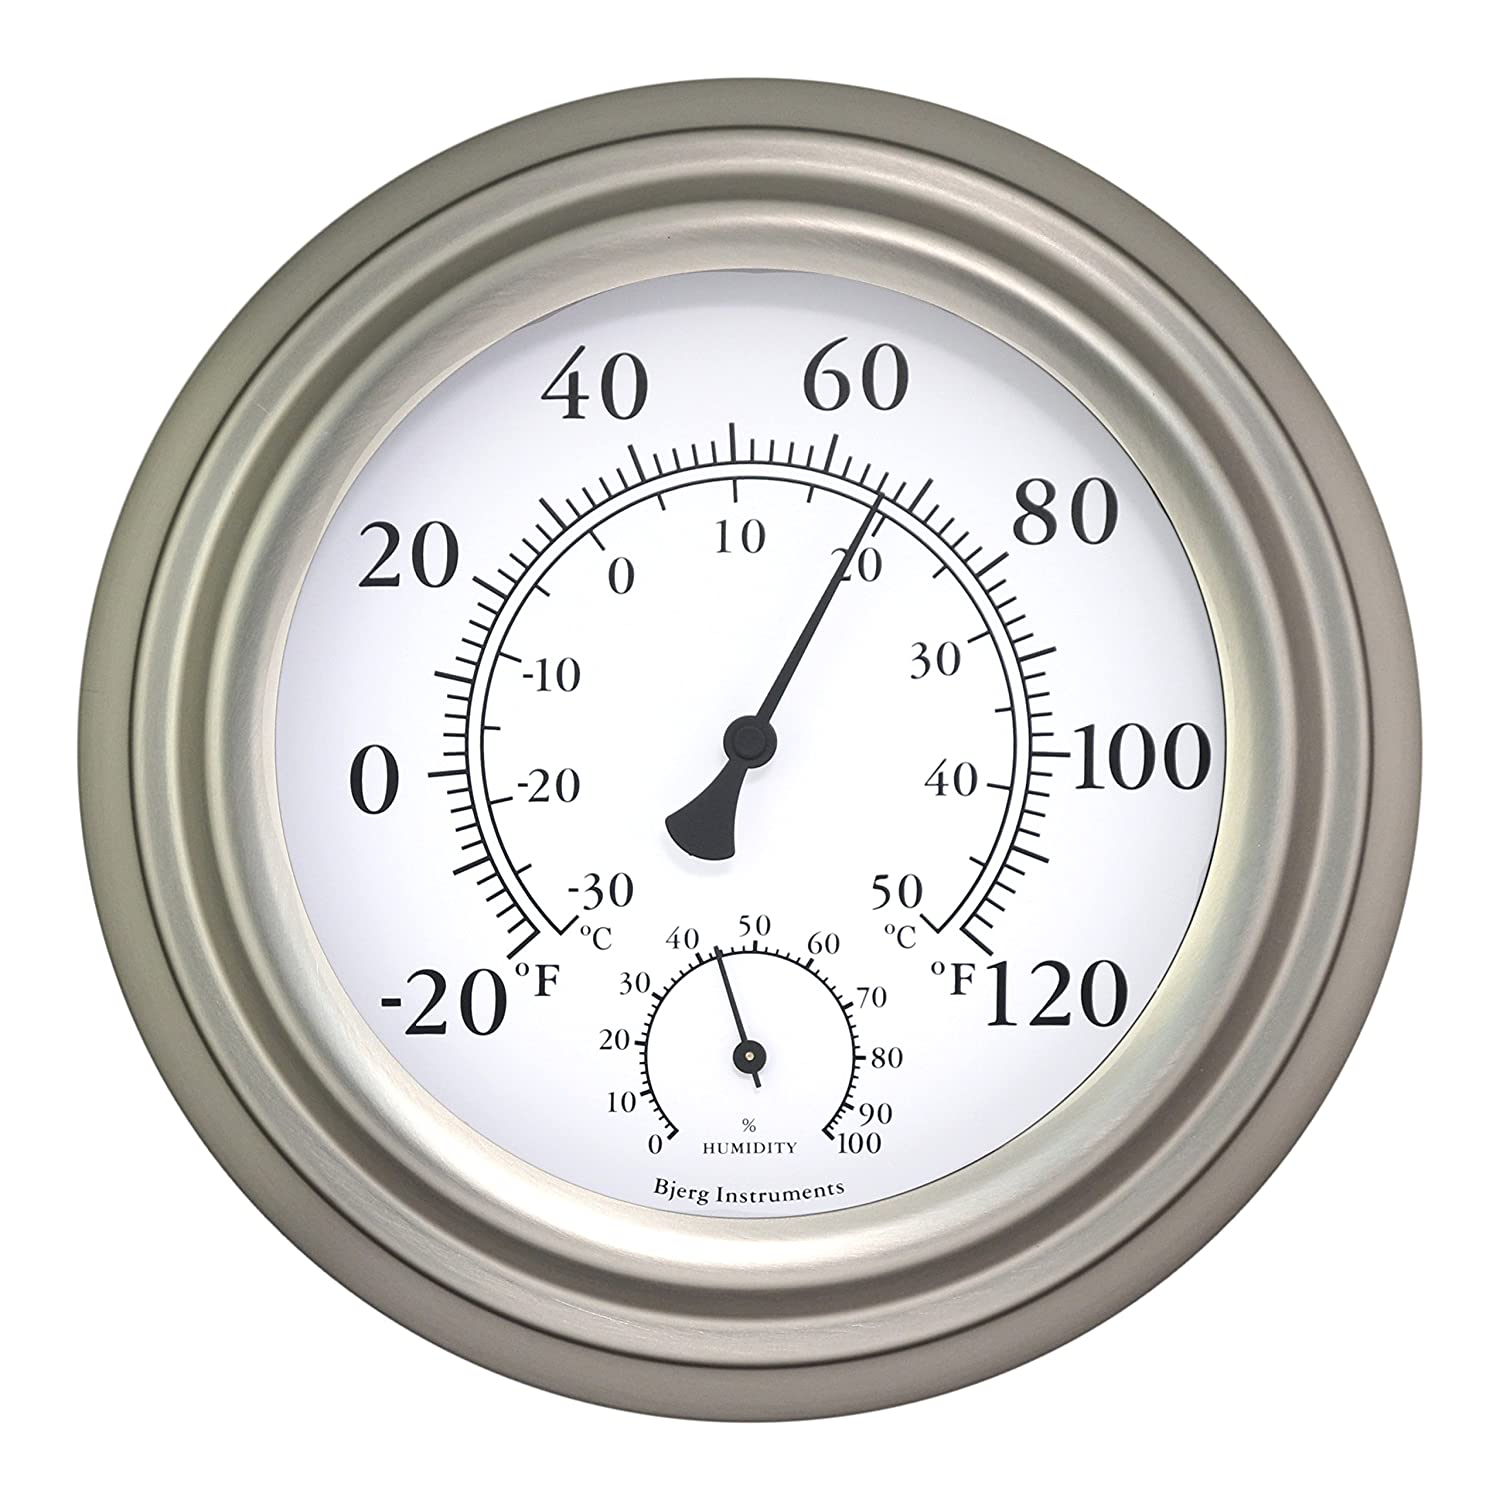 Amazon 8 satin nickel finish decorative indoor outdoor amazon 8 satin nickel finish decorative indoor outdoor thermometer and hygrometer garden outdoor amipublicfo Gallery